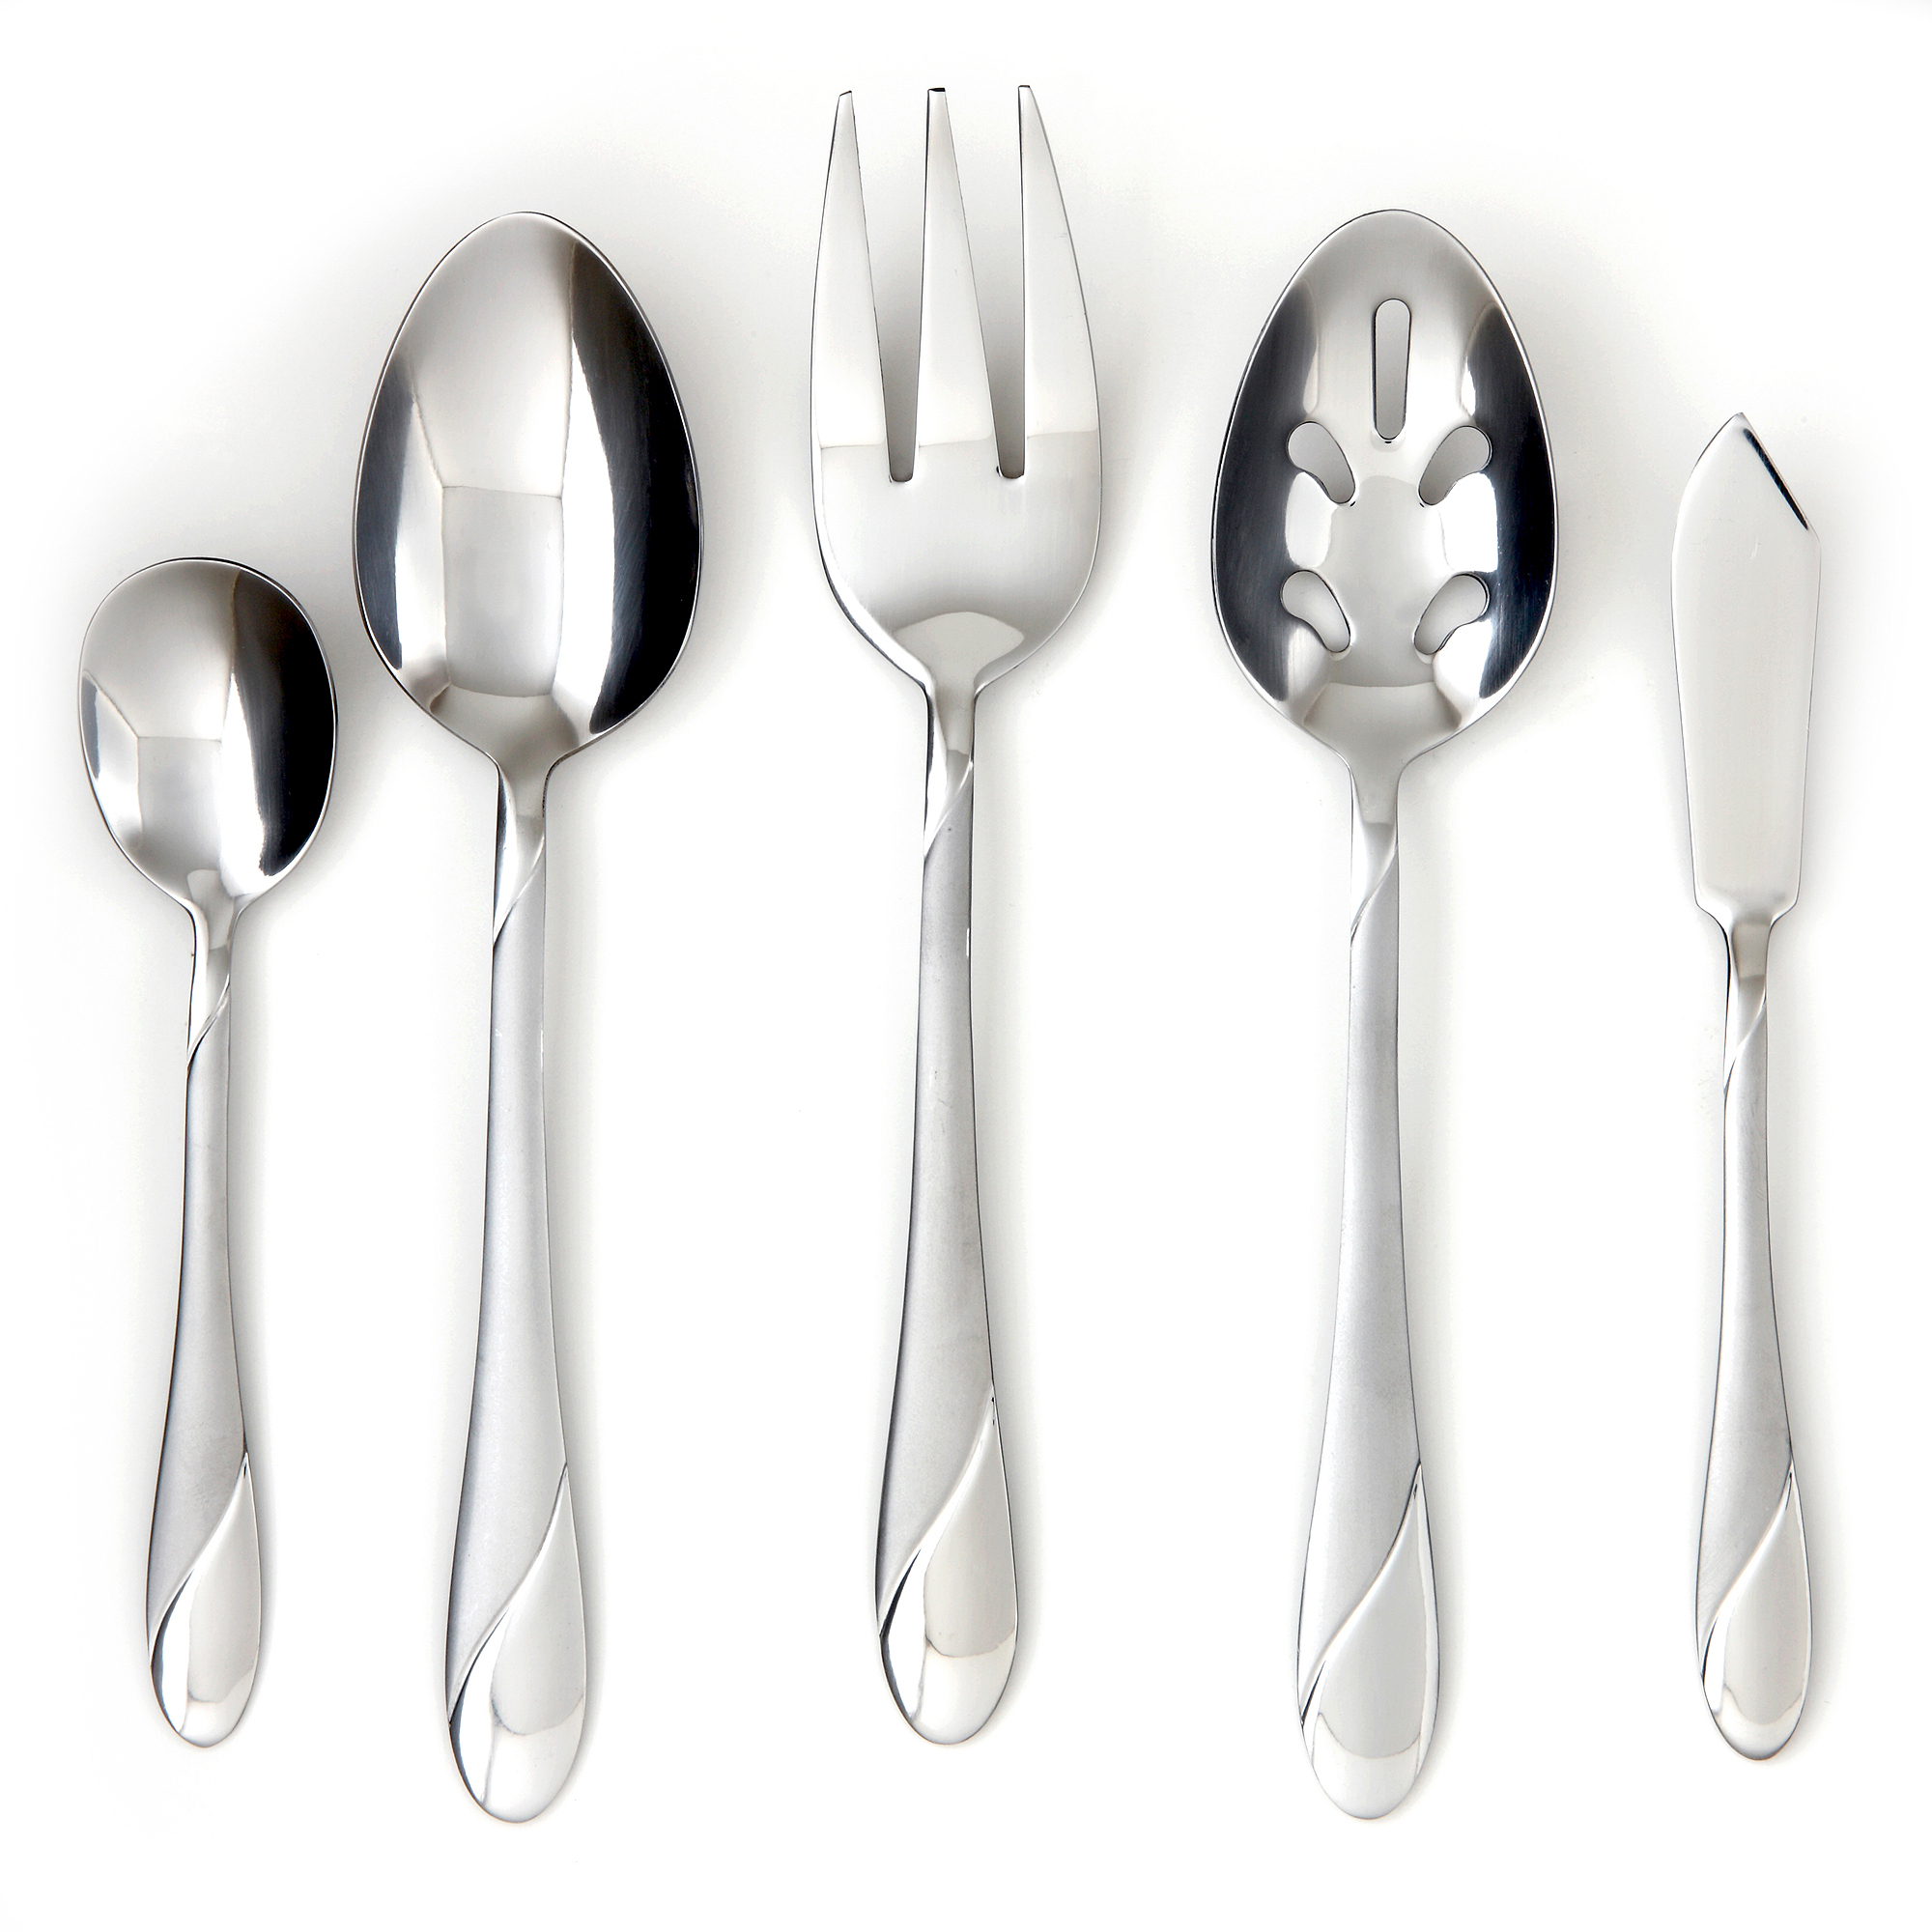 Flatware Service for 12 Stainless Steel Set Silverware Place Settings 89 Pieces